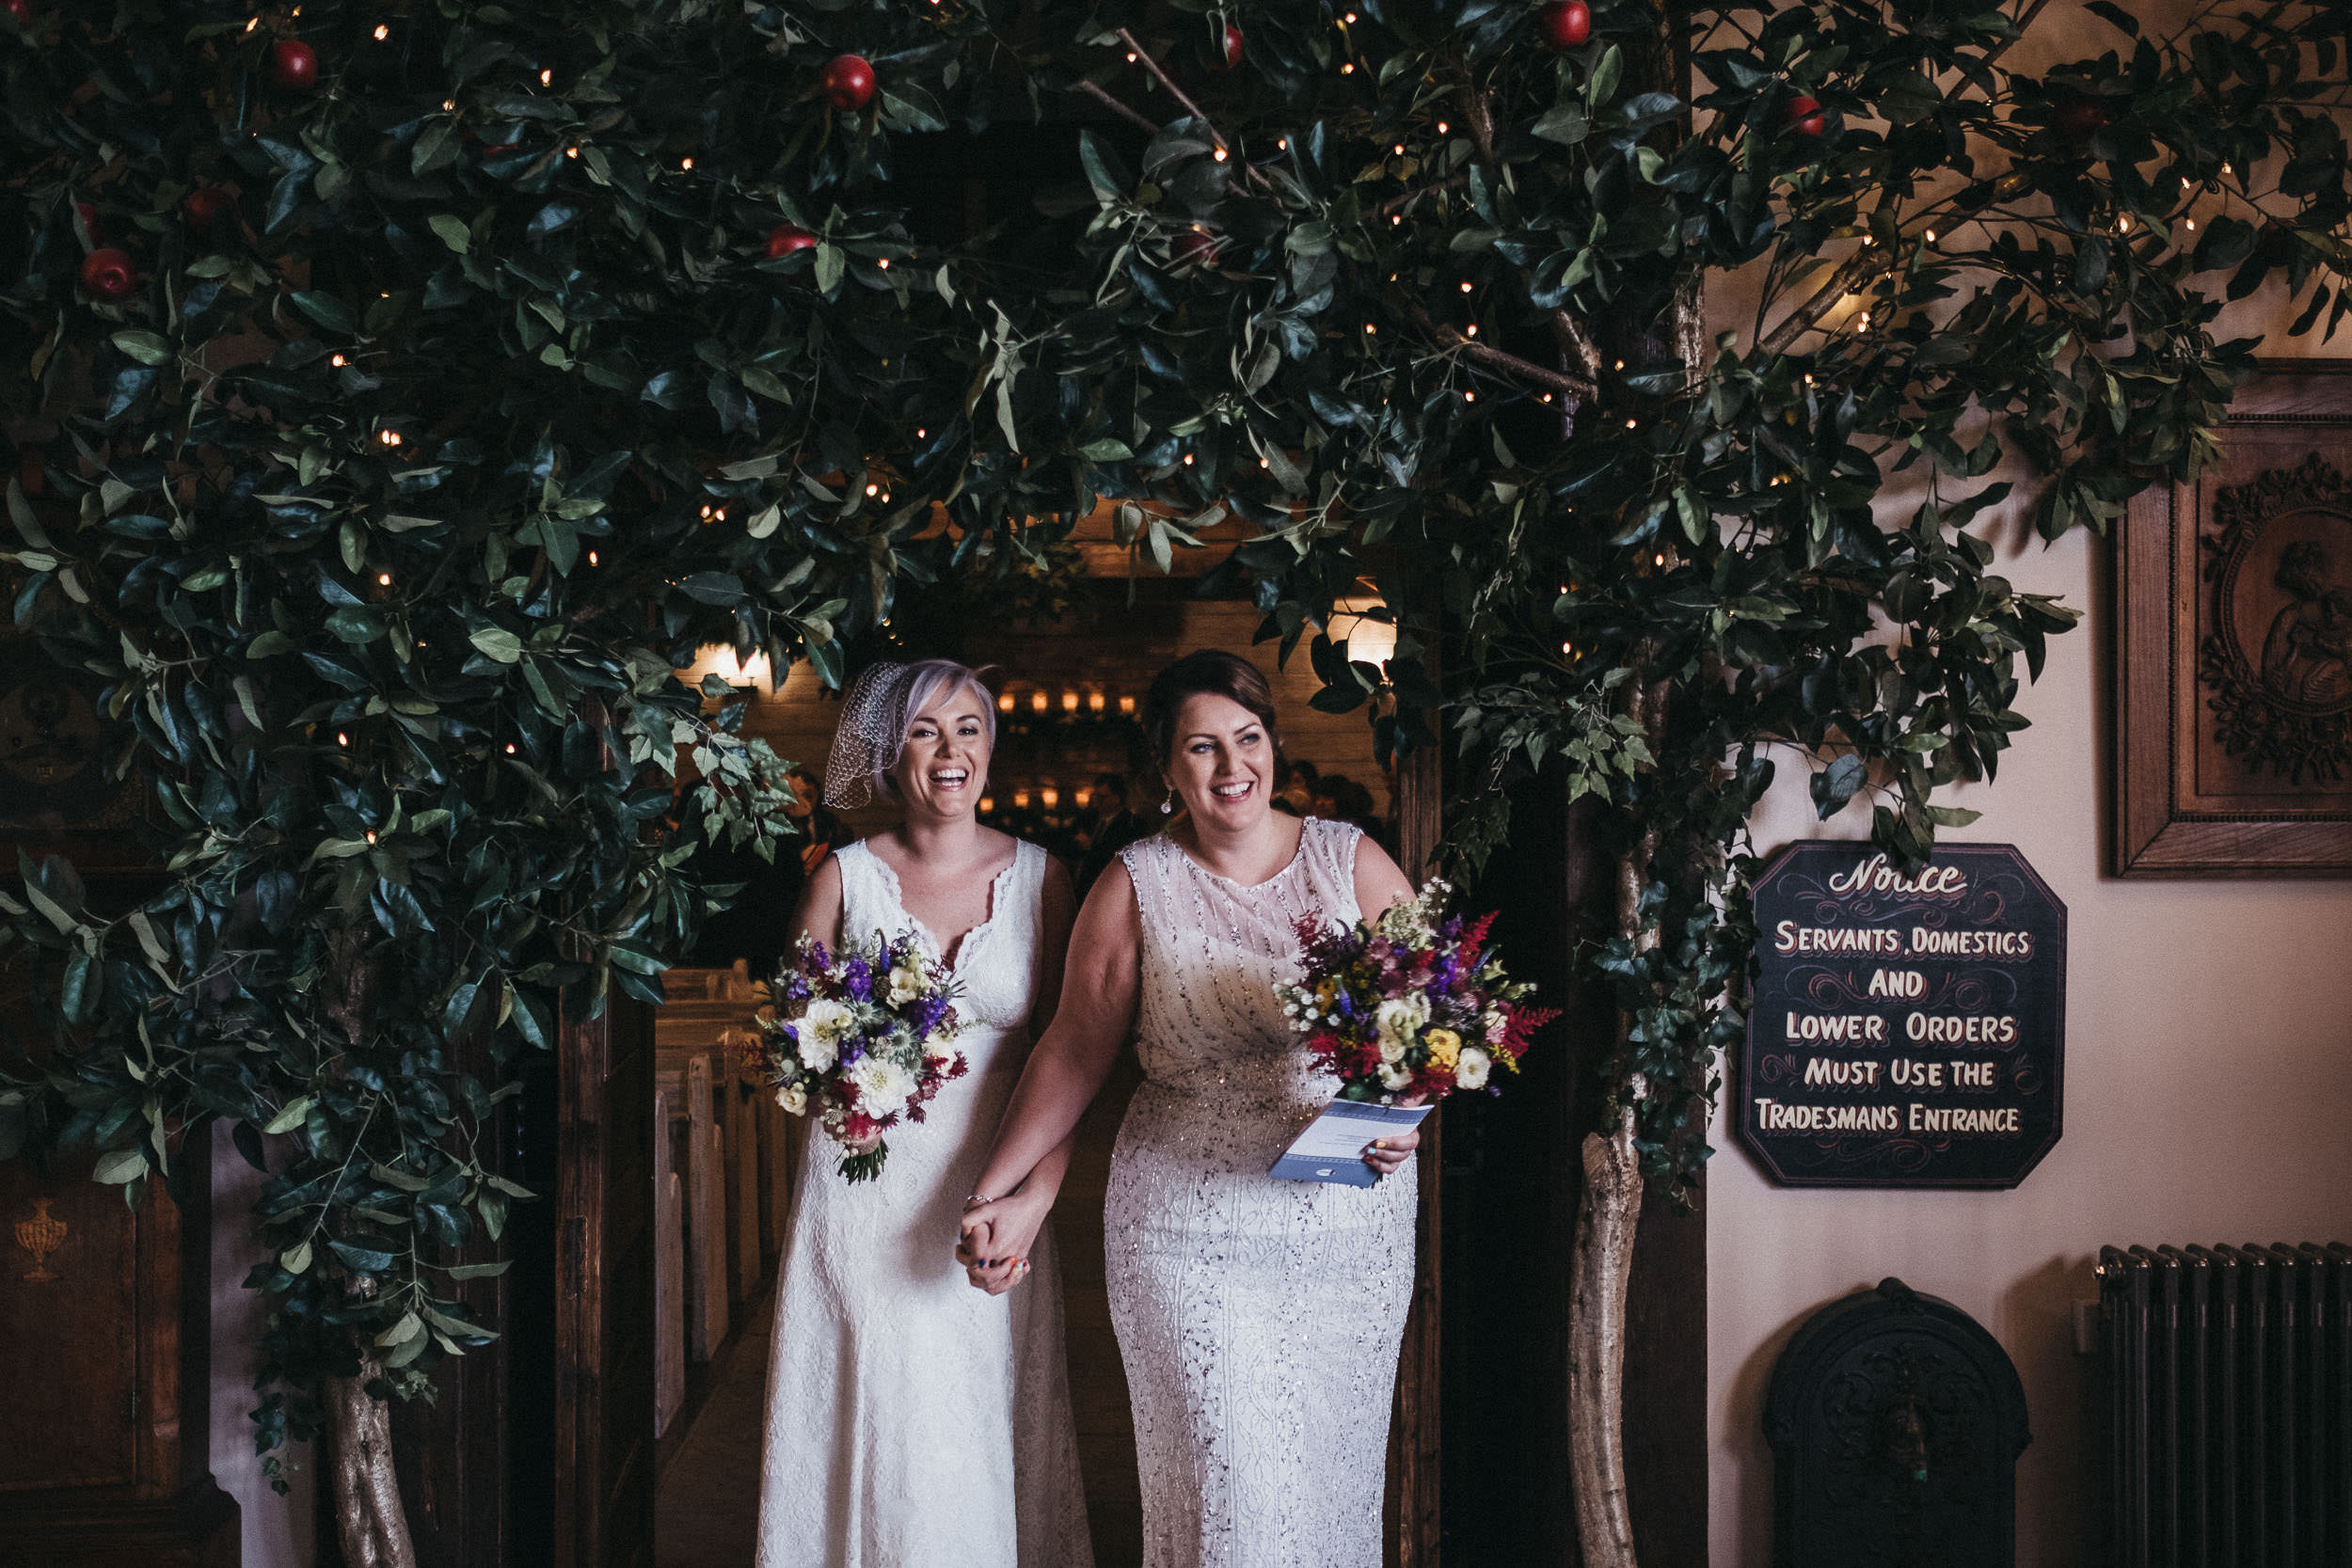 BTwo brides emerge smiling from their wedding ceremony